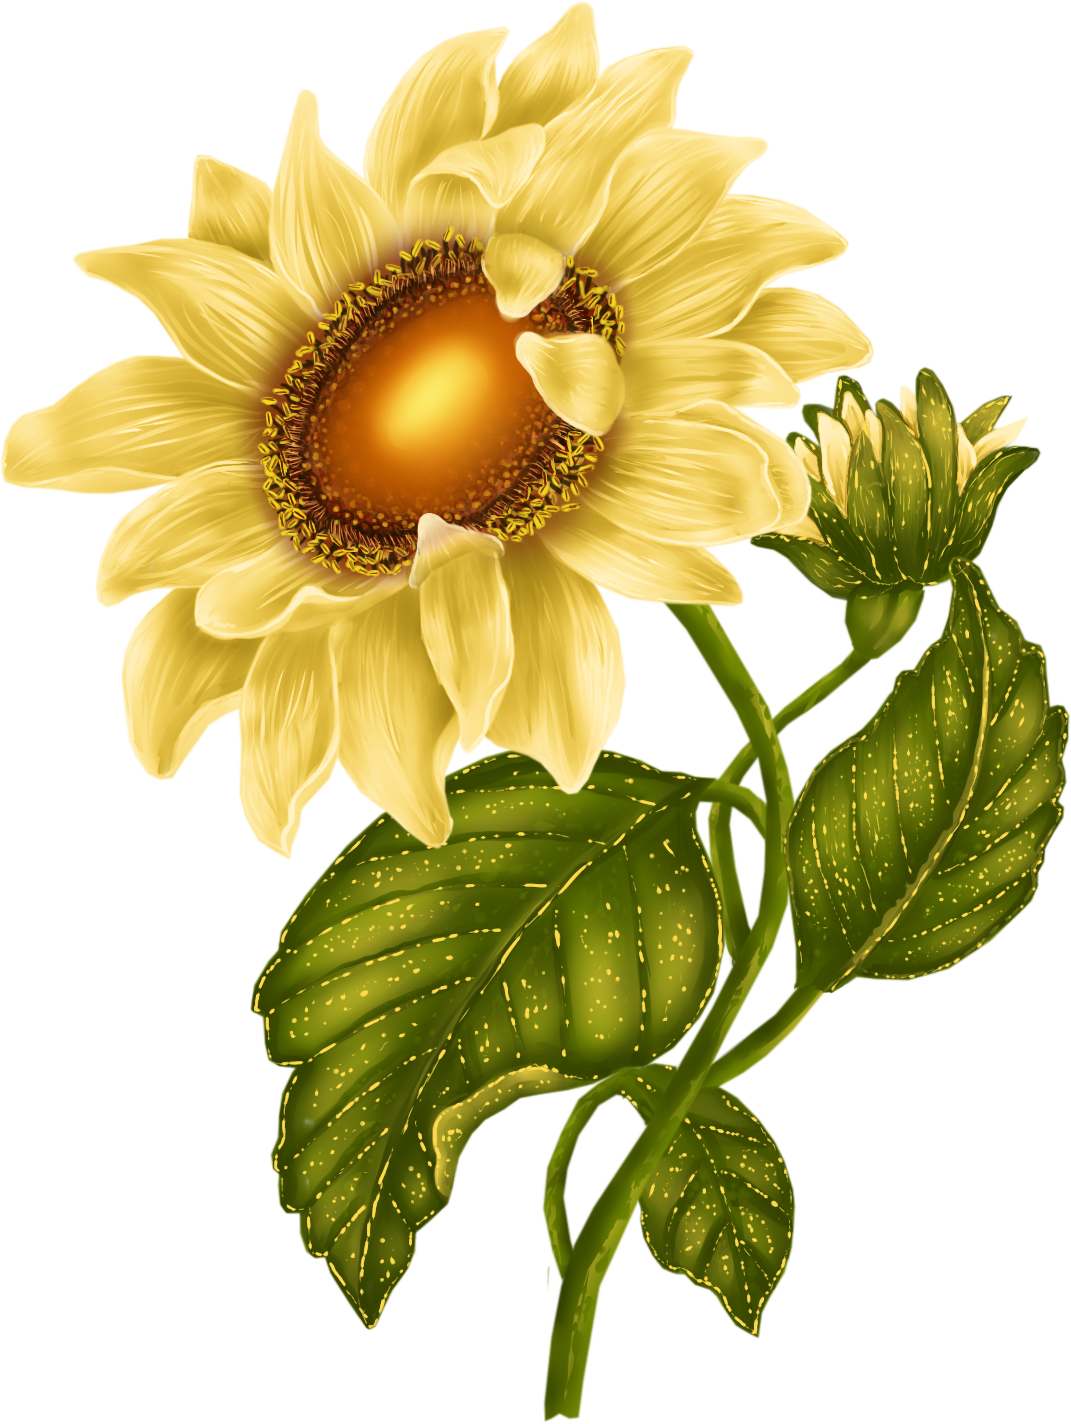 October clipart october flower. Archive svet klip artu